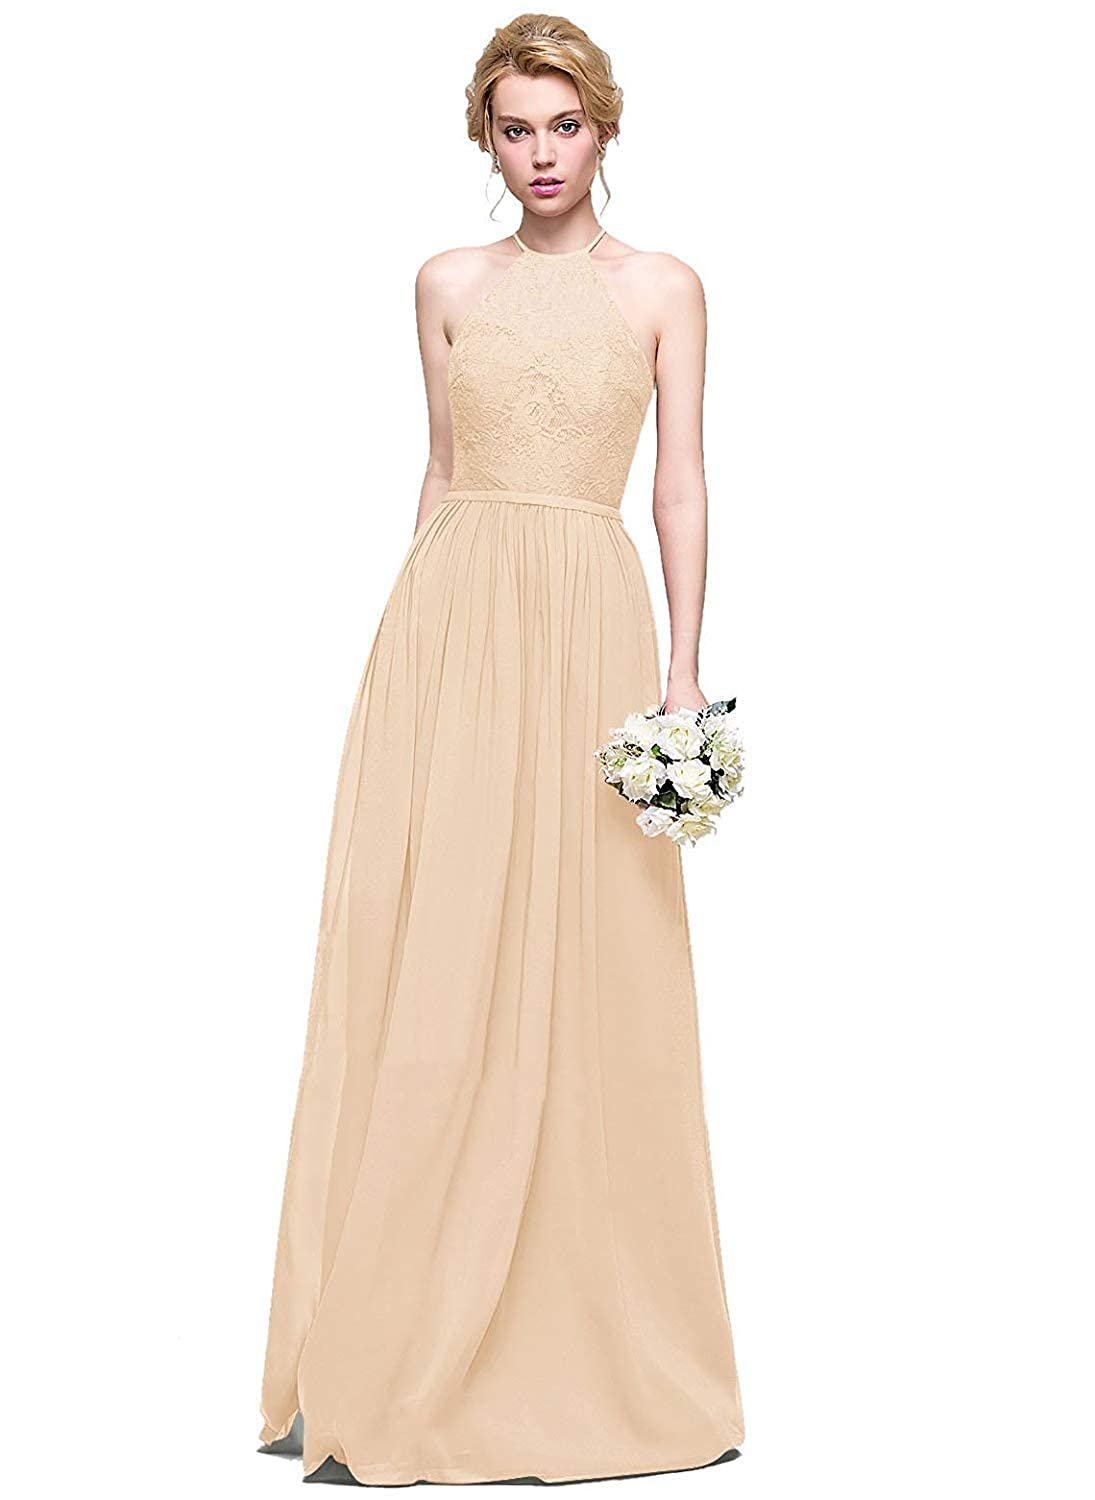 Champagne Halter Lace Sweetheart Neck Bridesmaid Dresses Long Prom Evening Gown